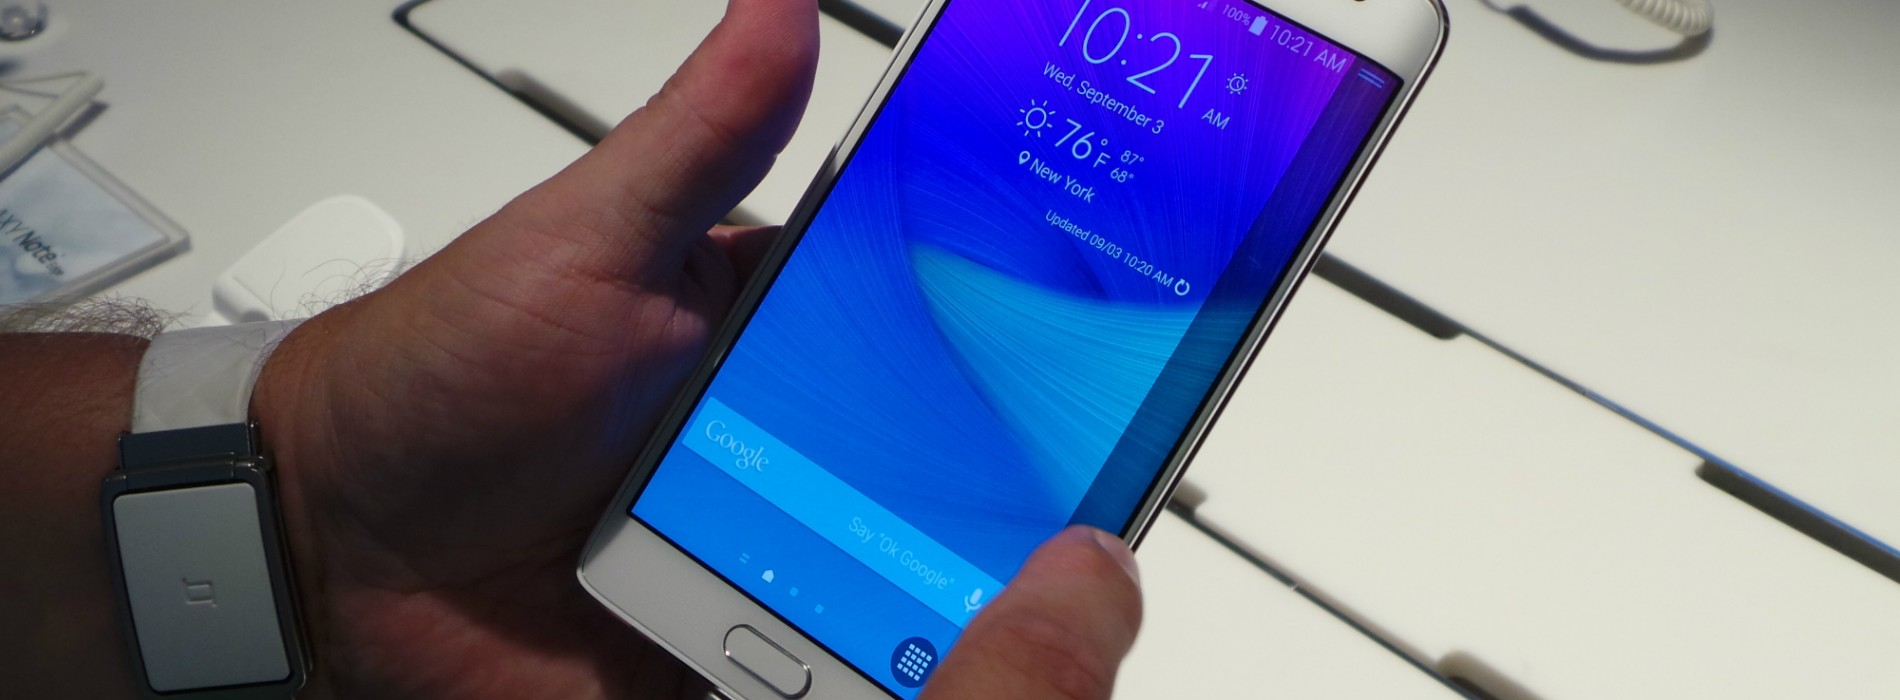 Sprint to carry Galaxy Note 4, Galaxy Note Edge, Gear VR